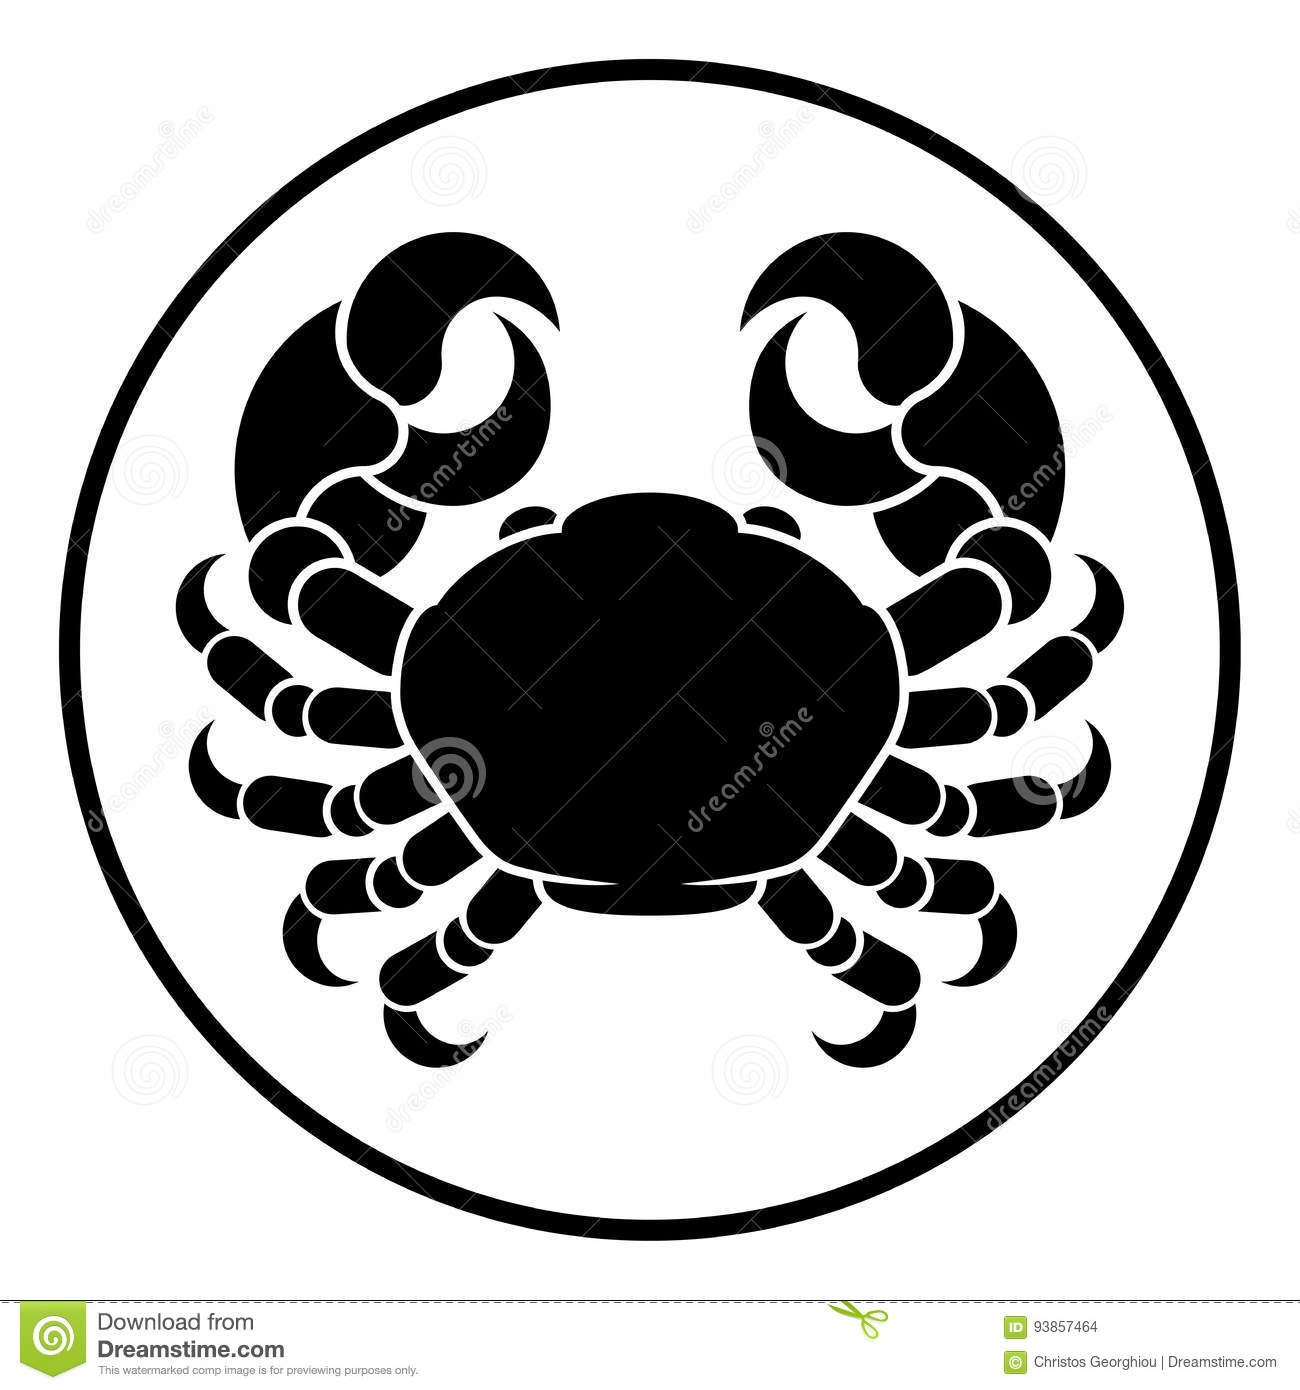 Cancer Horoscope Zodiac Sign Crab Stock Vector Illustration Of